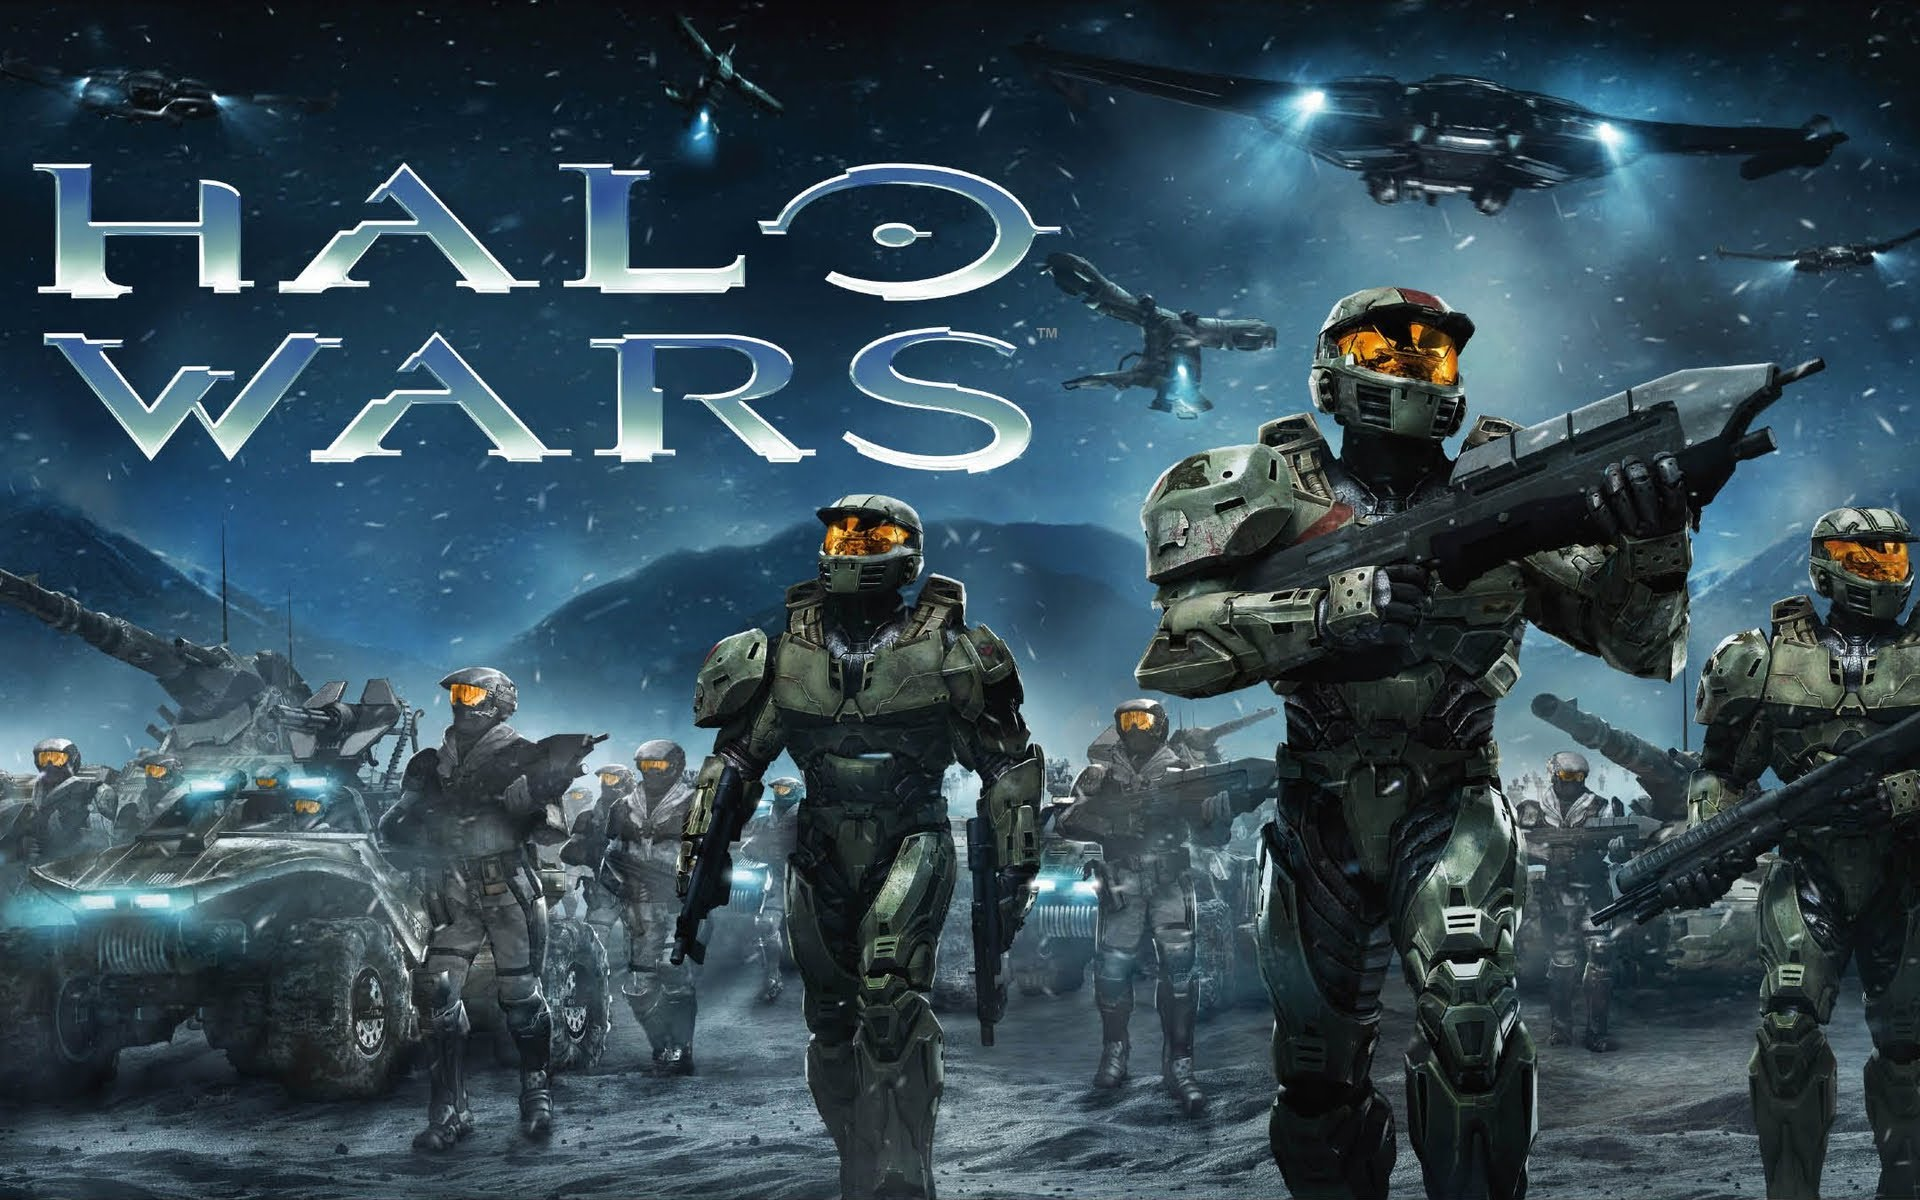 Halo Wars Backgrounds on Wallpapers Vista